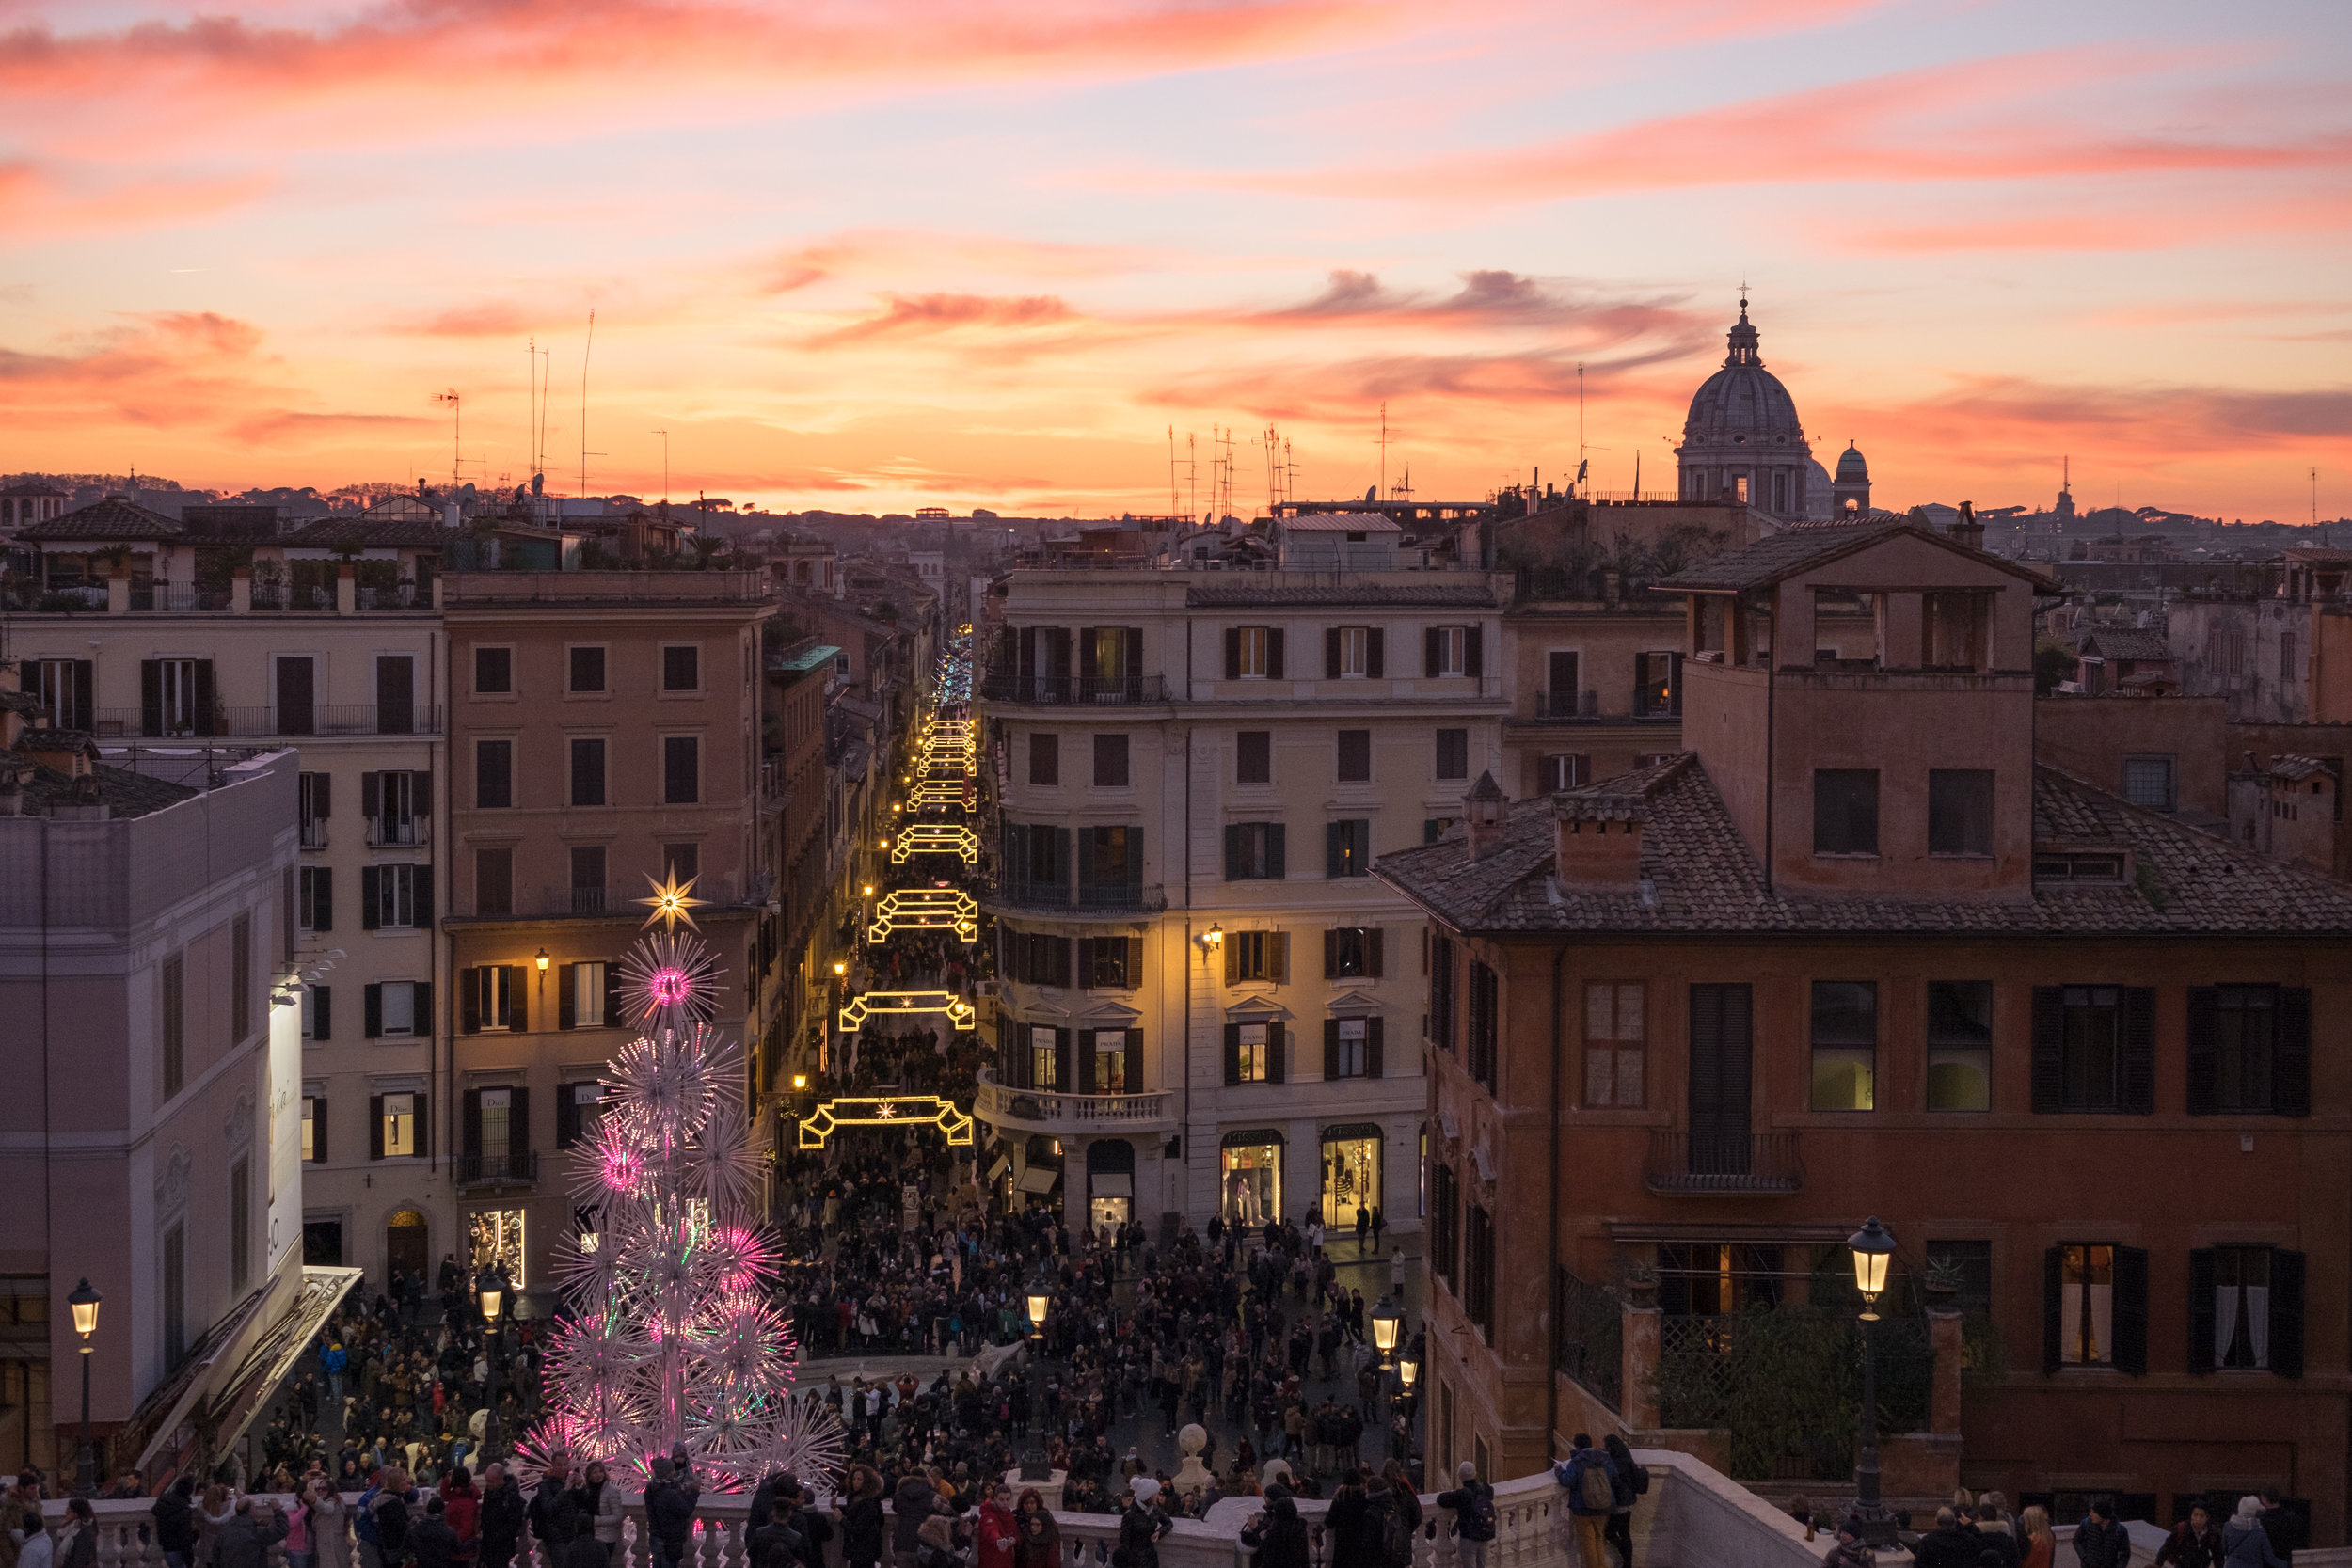 Evening Christmas shopping in Rome